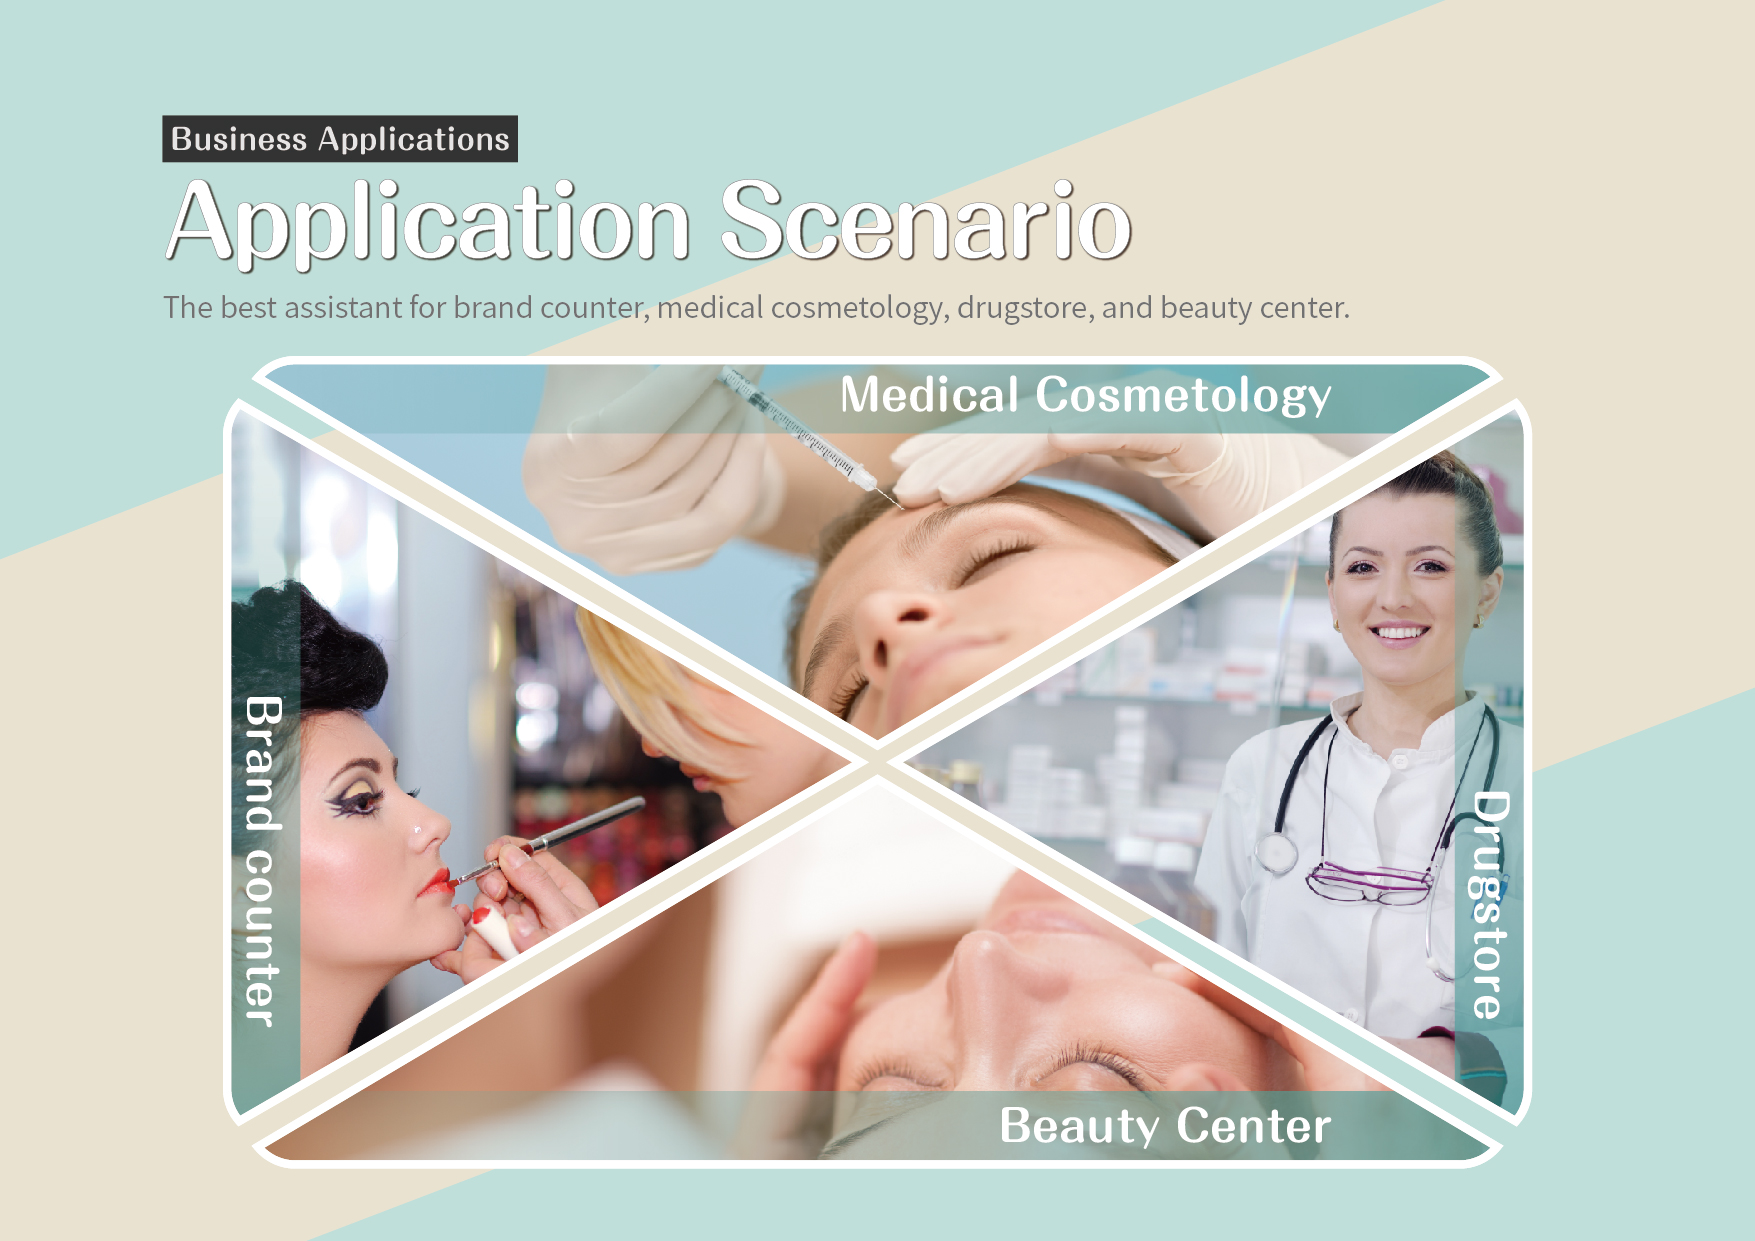 Application Scenario: The best assistant for brand counter, medical cosmetology, drugstore, and beauty center.